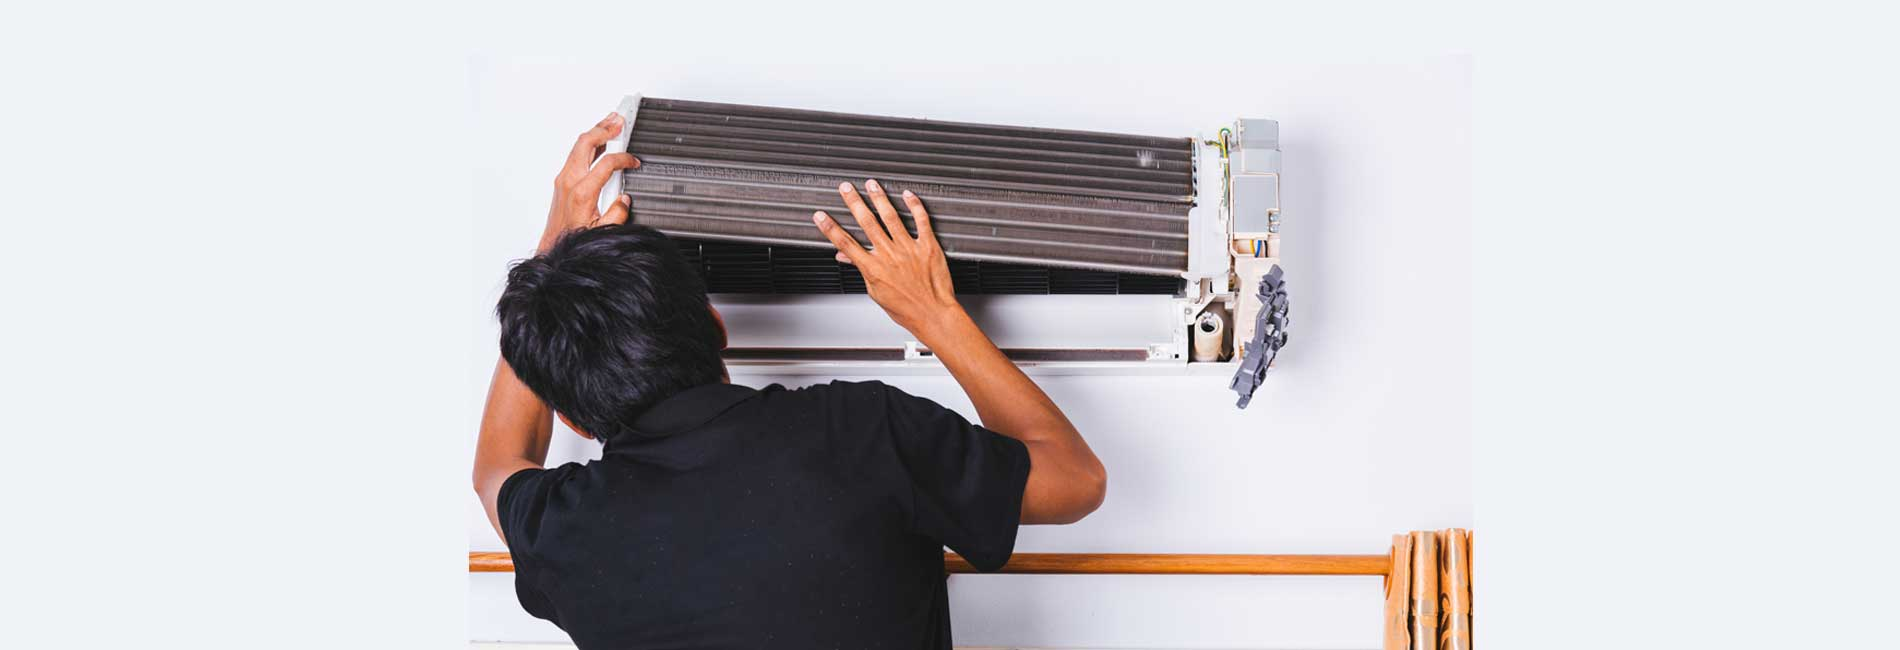 LG AC Uninstallation and Installation in Navalur